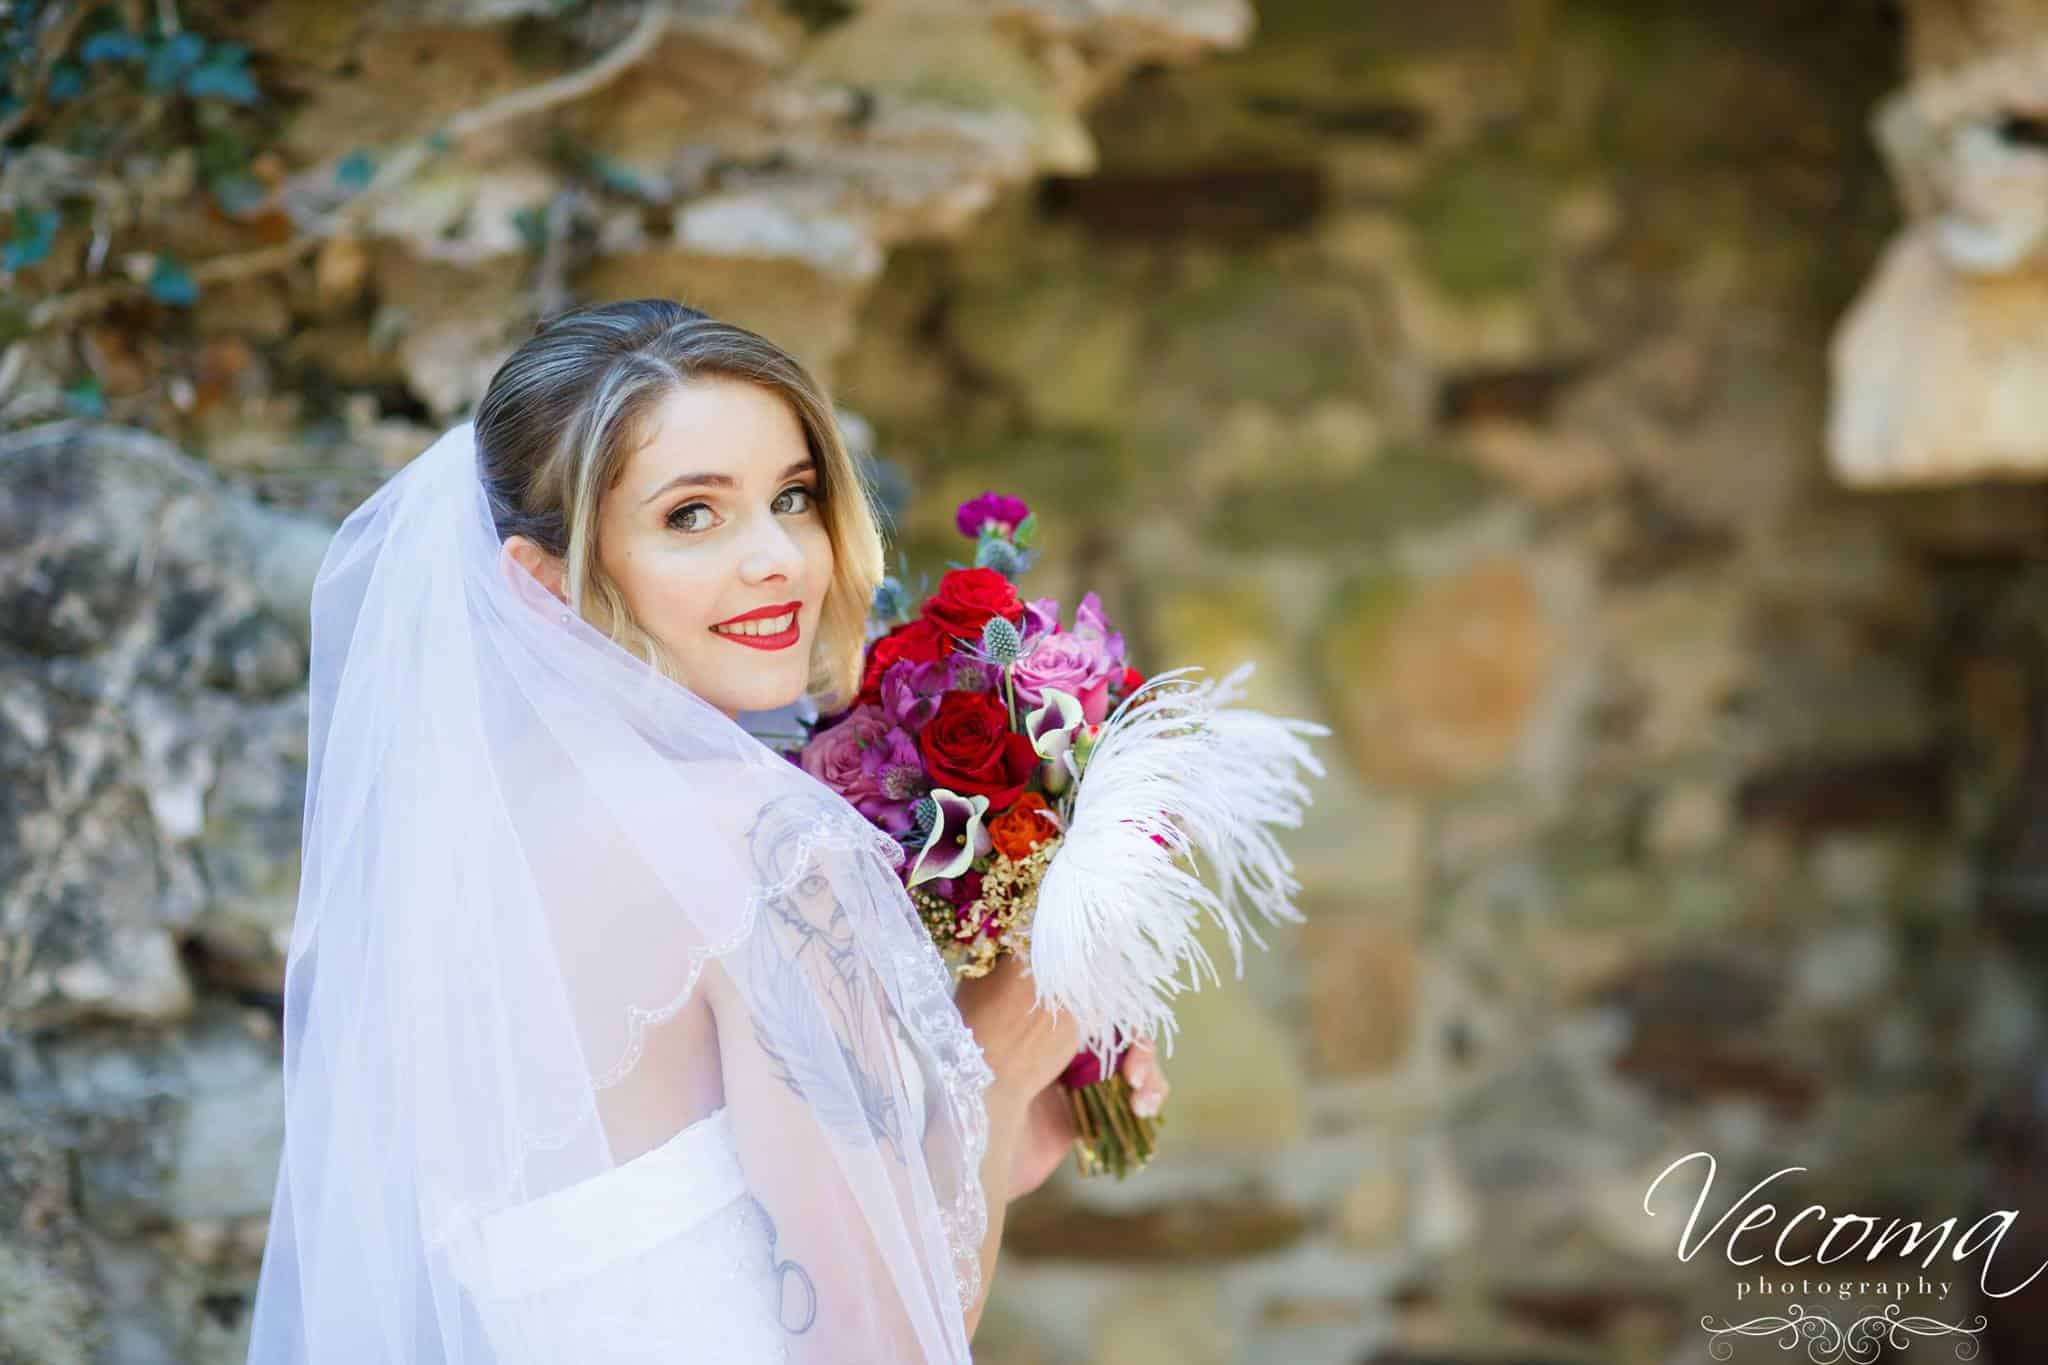 Beautiful bride with stunning bouquet of lilies roses and feathers